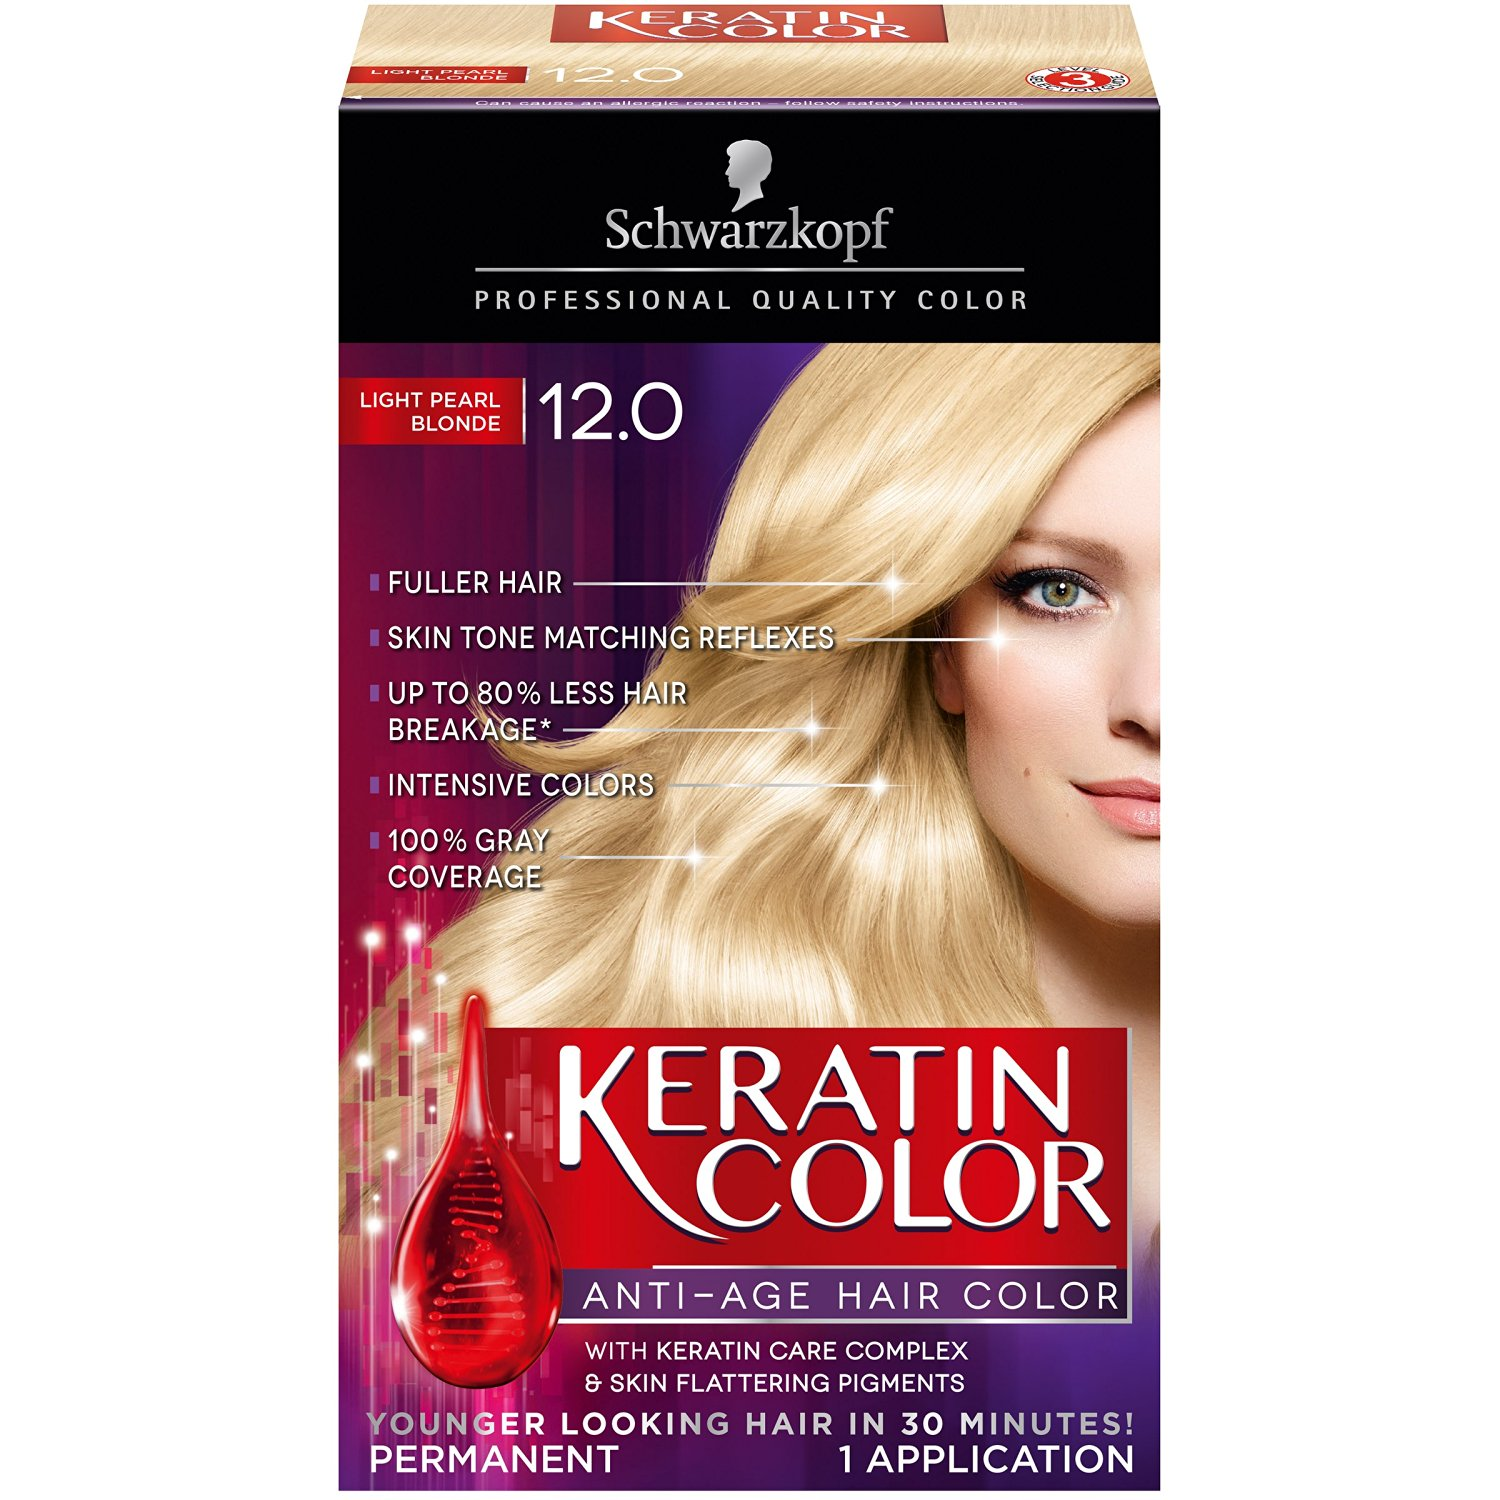 Cheap Pearl Blonde Hair Find Pearl Blonde Hair Deals On Line At